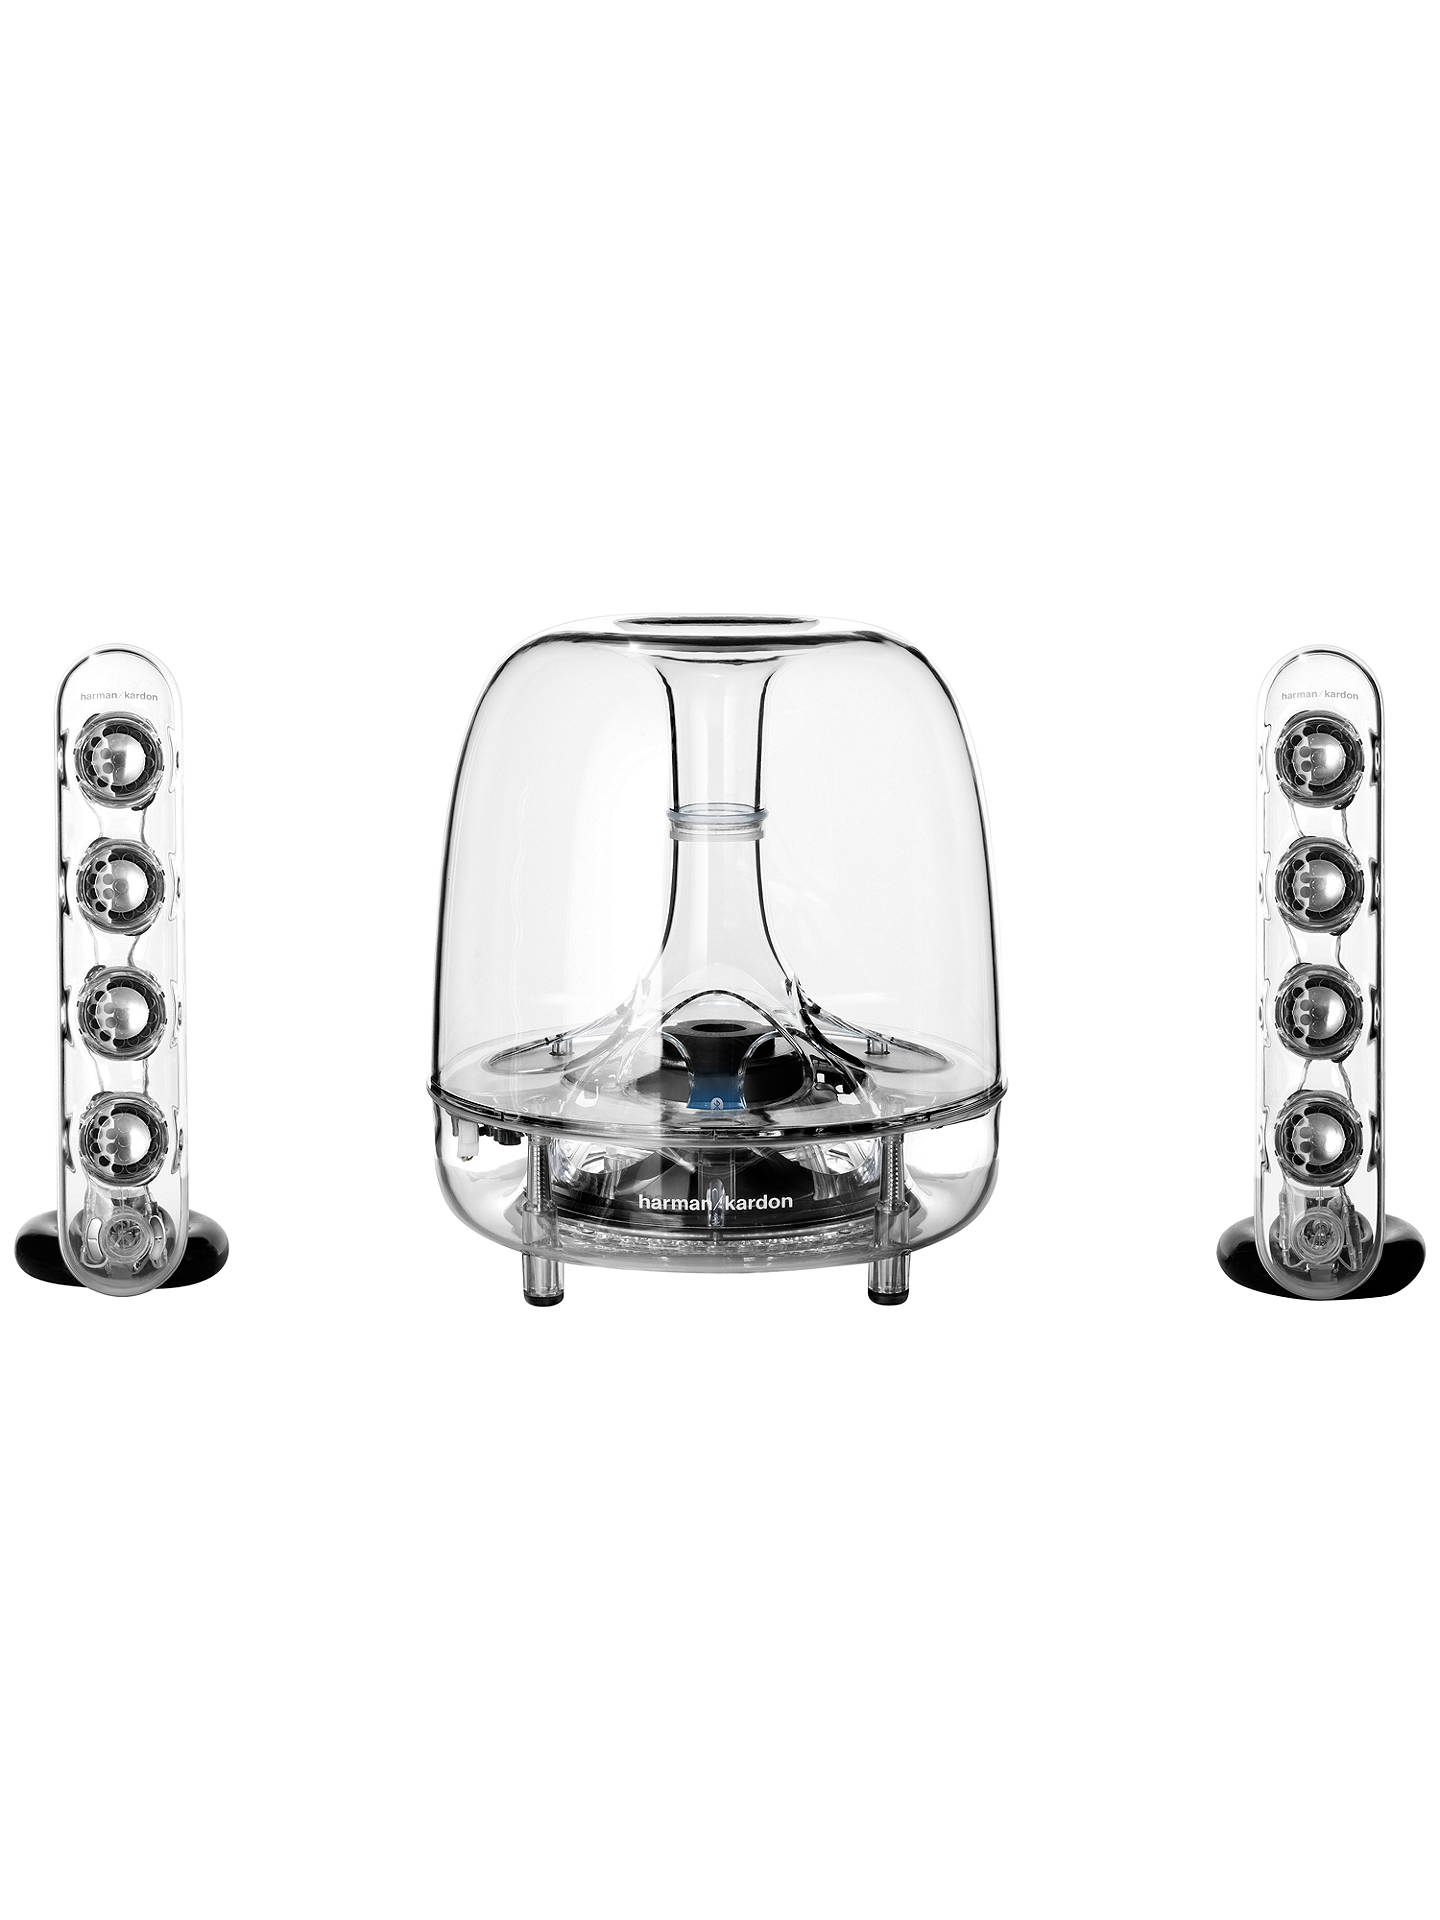 Harman Kardon SoundSticks Wireless 2.1 Desktop Speaker